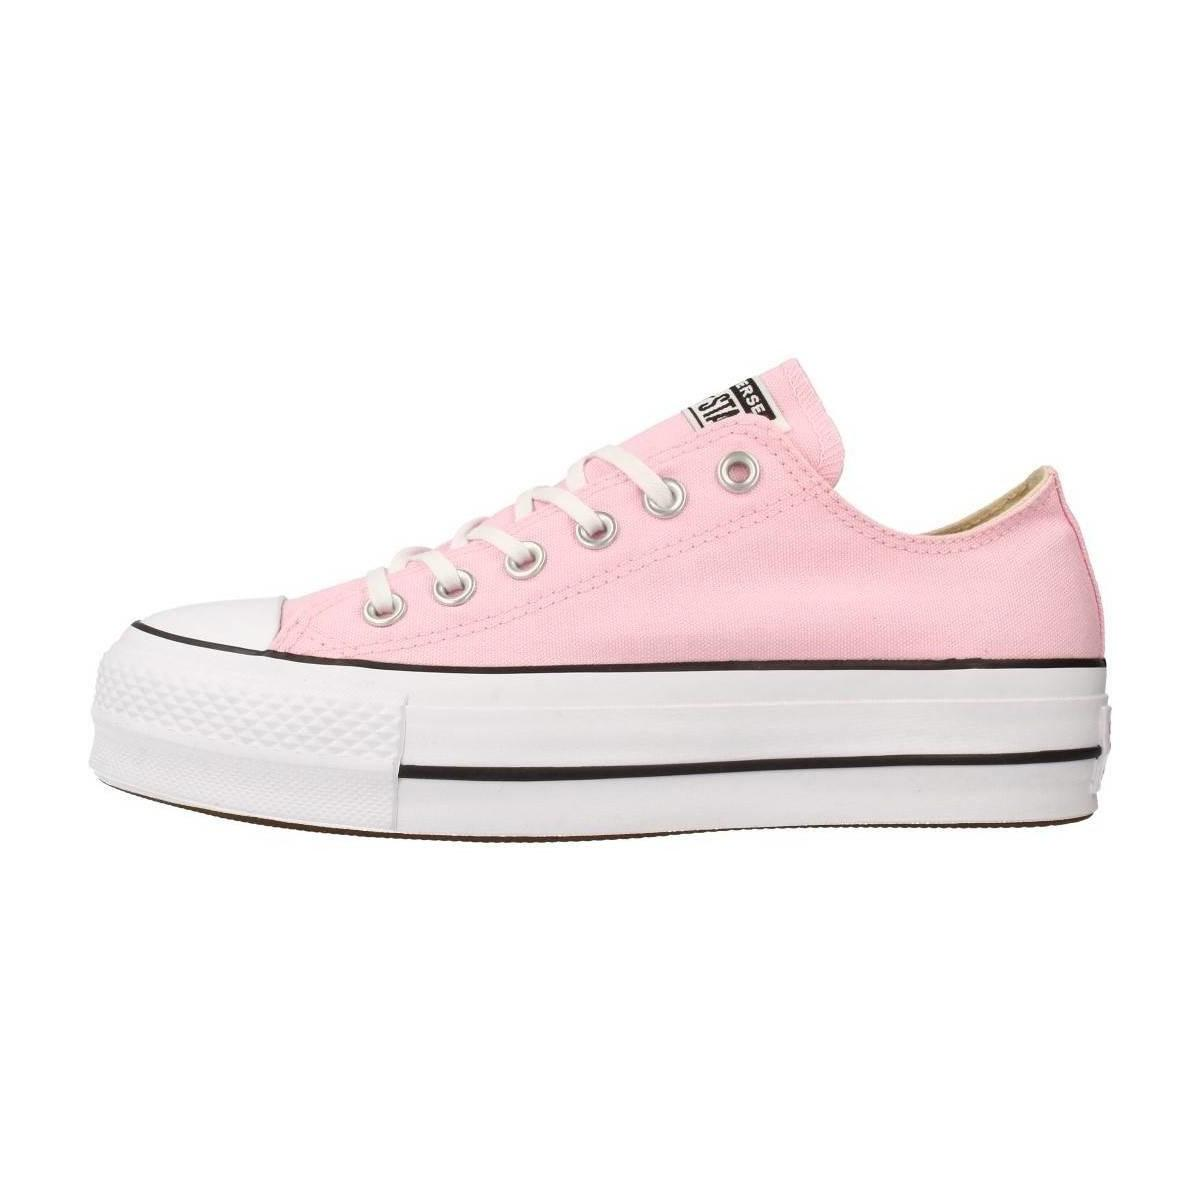 Converse Ctas Lift Ox Cherry Blossom Women s In Pink in Pink for Men ... 0c505a548